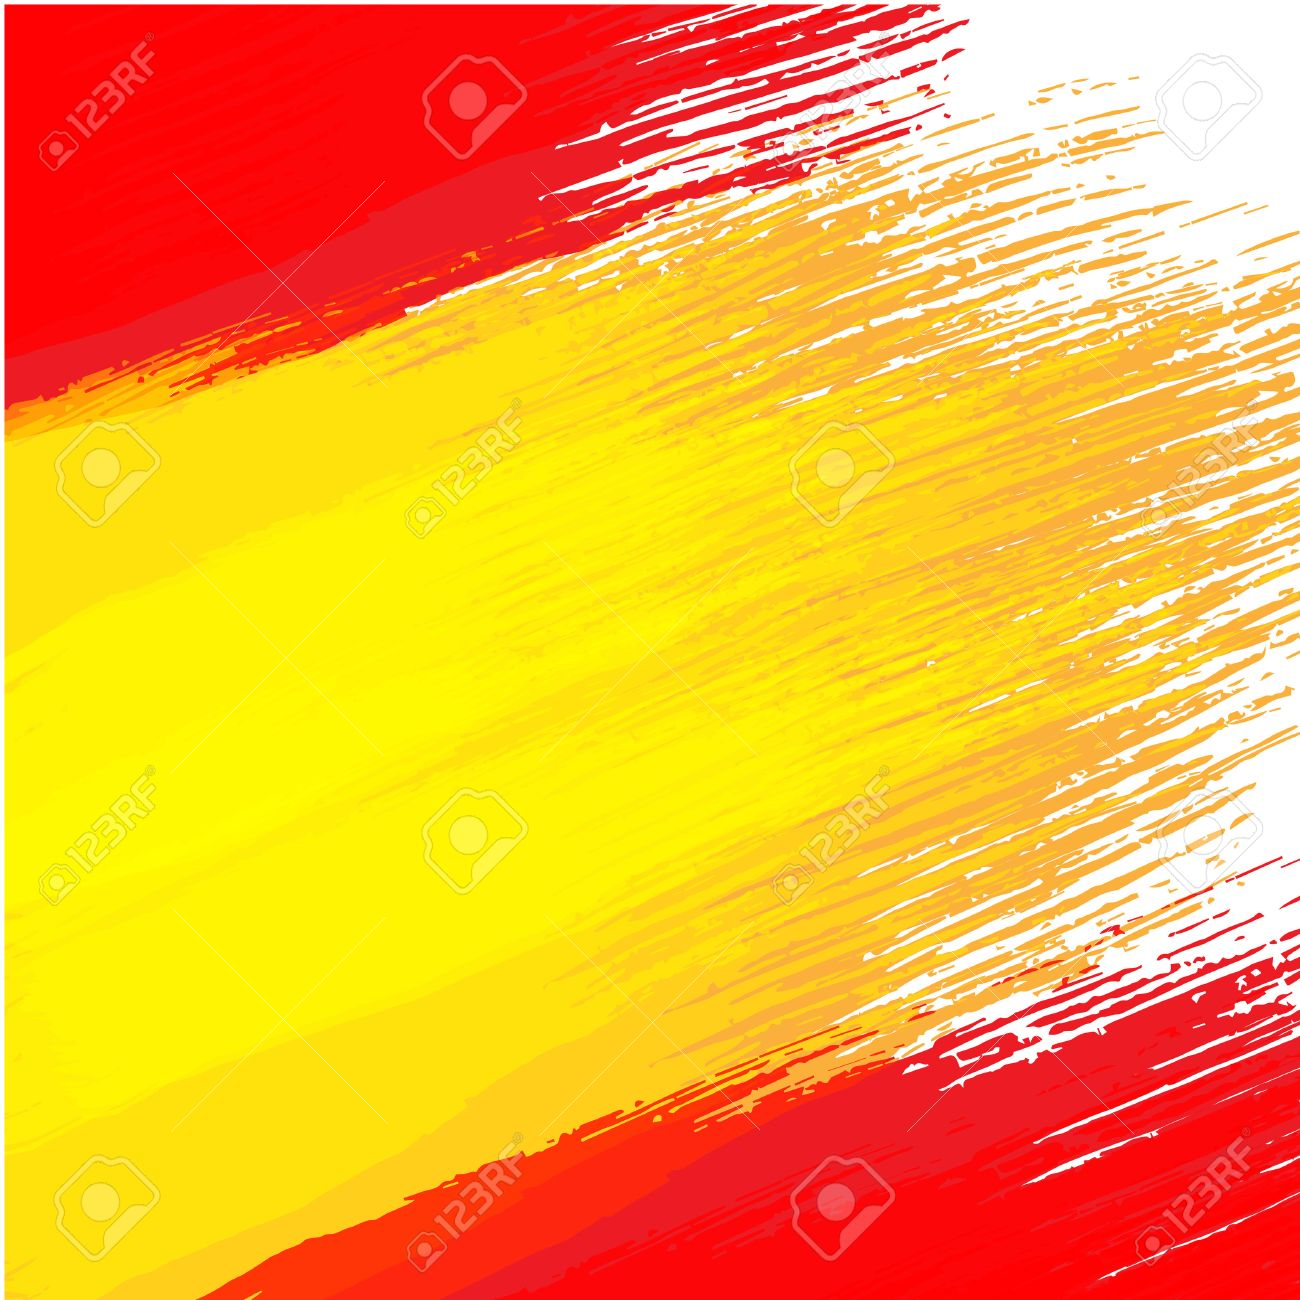 grunge background in colors of spanish flag royalty free cliparts